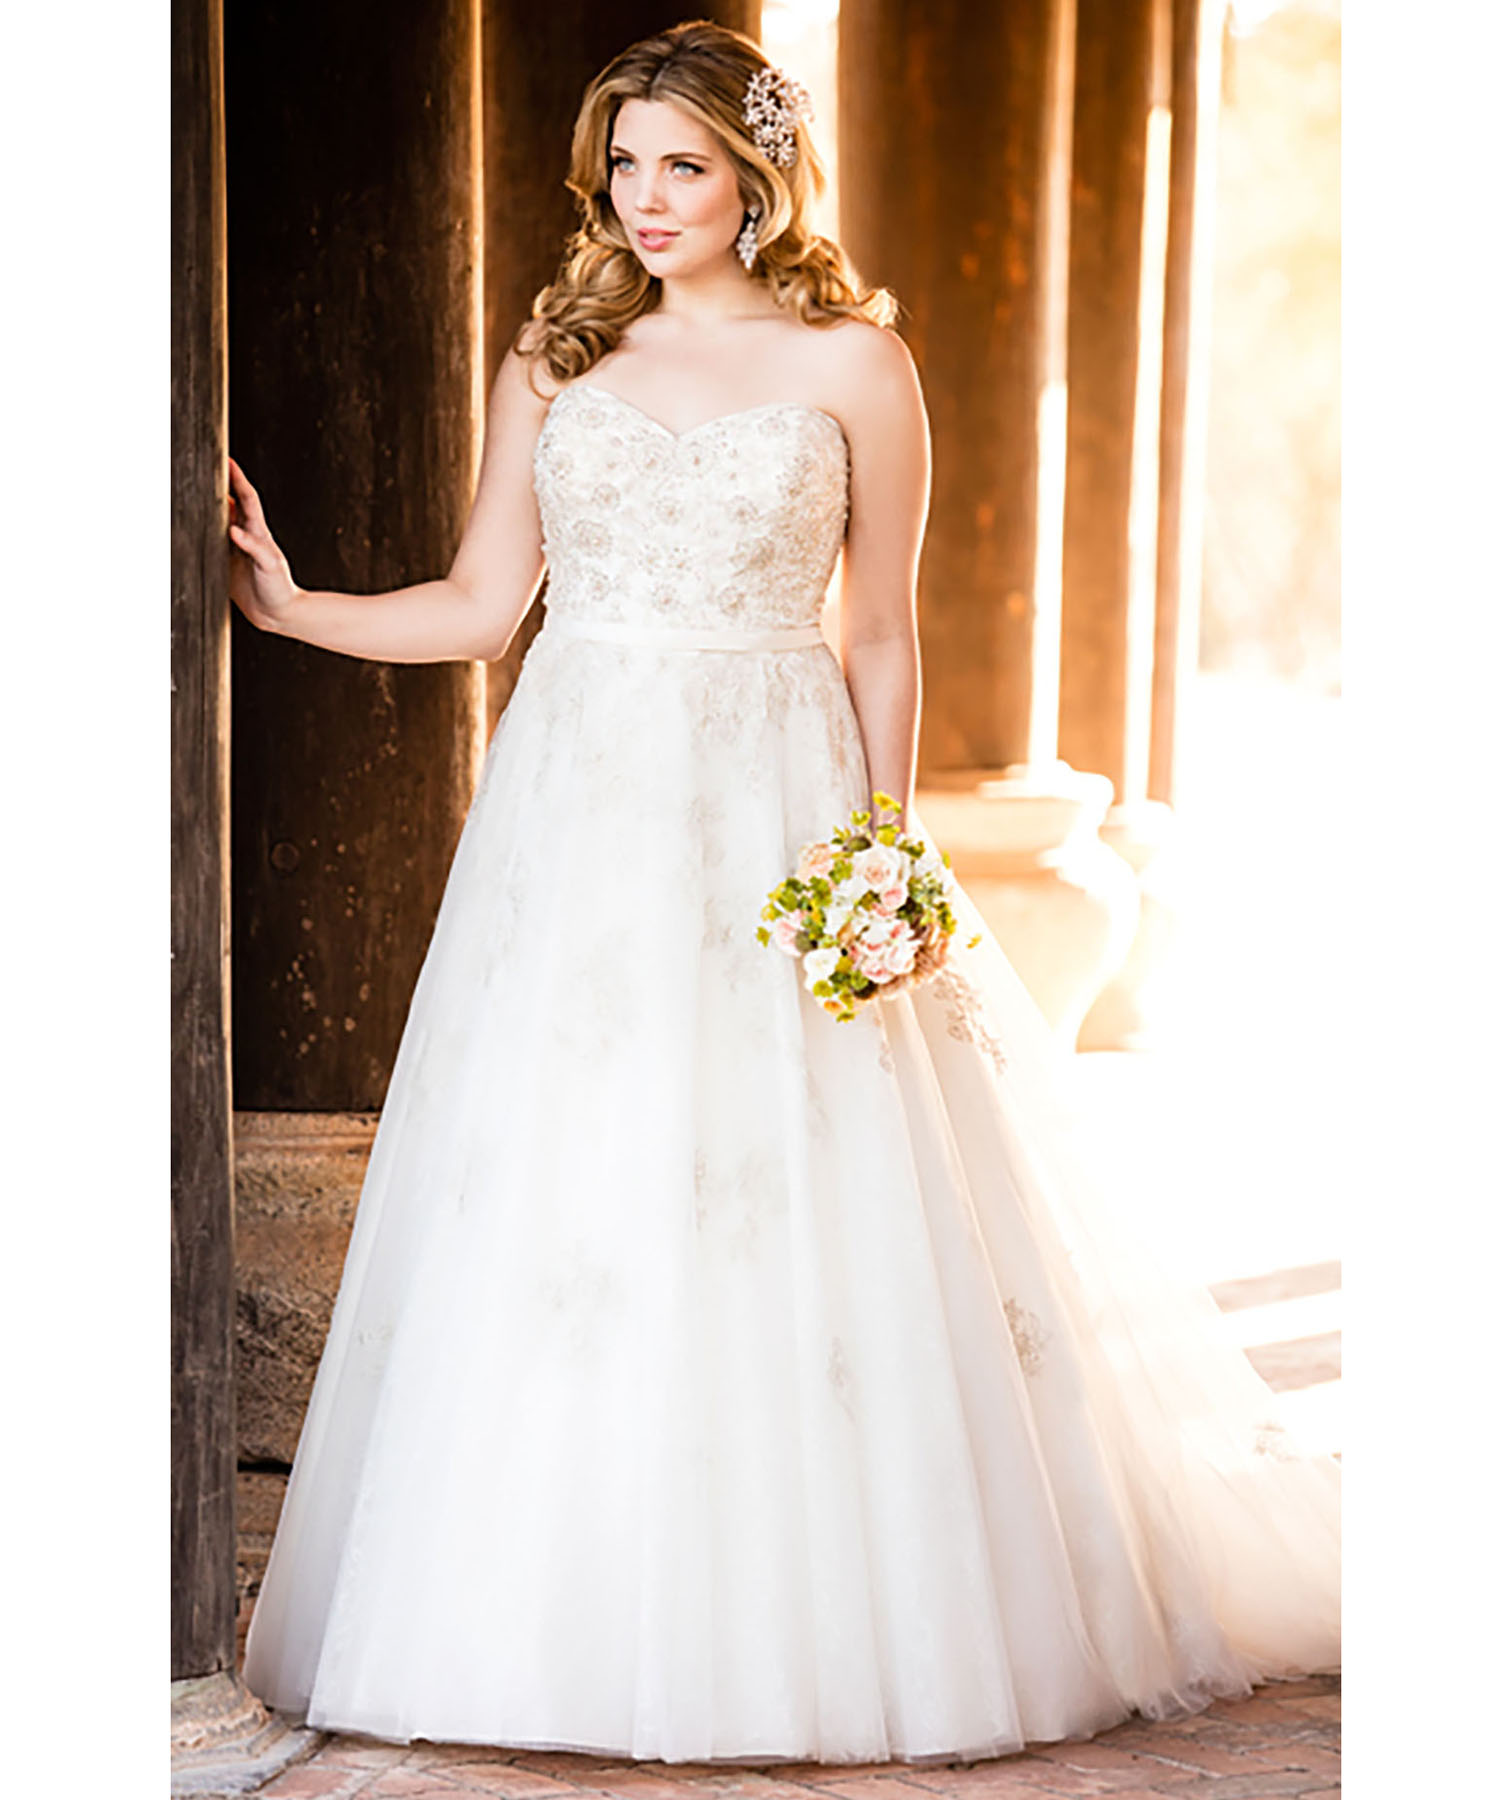 Wedding Gowns For Full Figured Brides: Wedding Dresses If You're Plus-Size